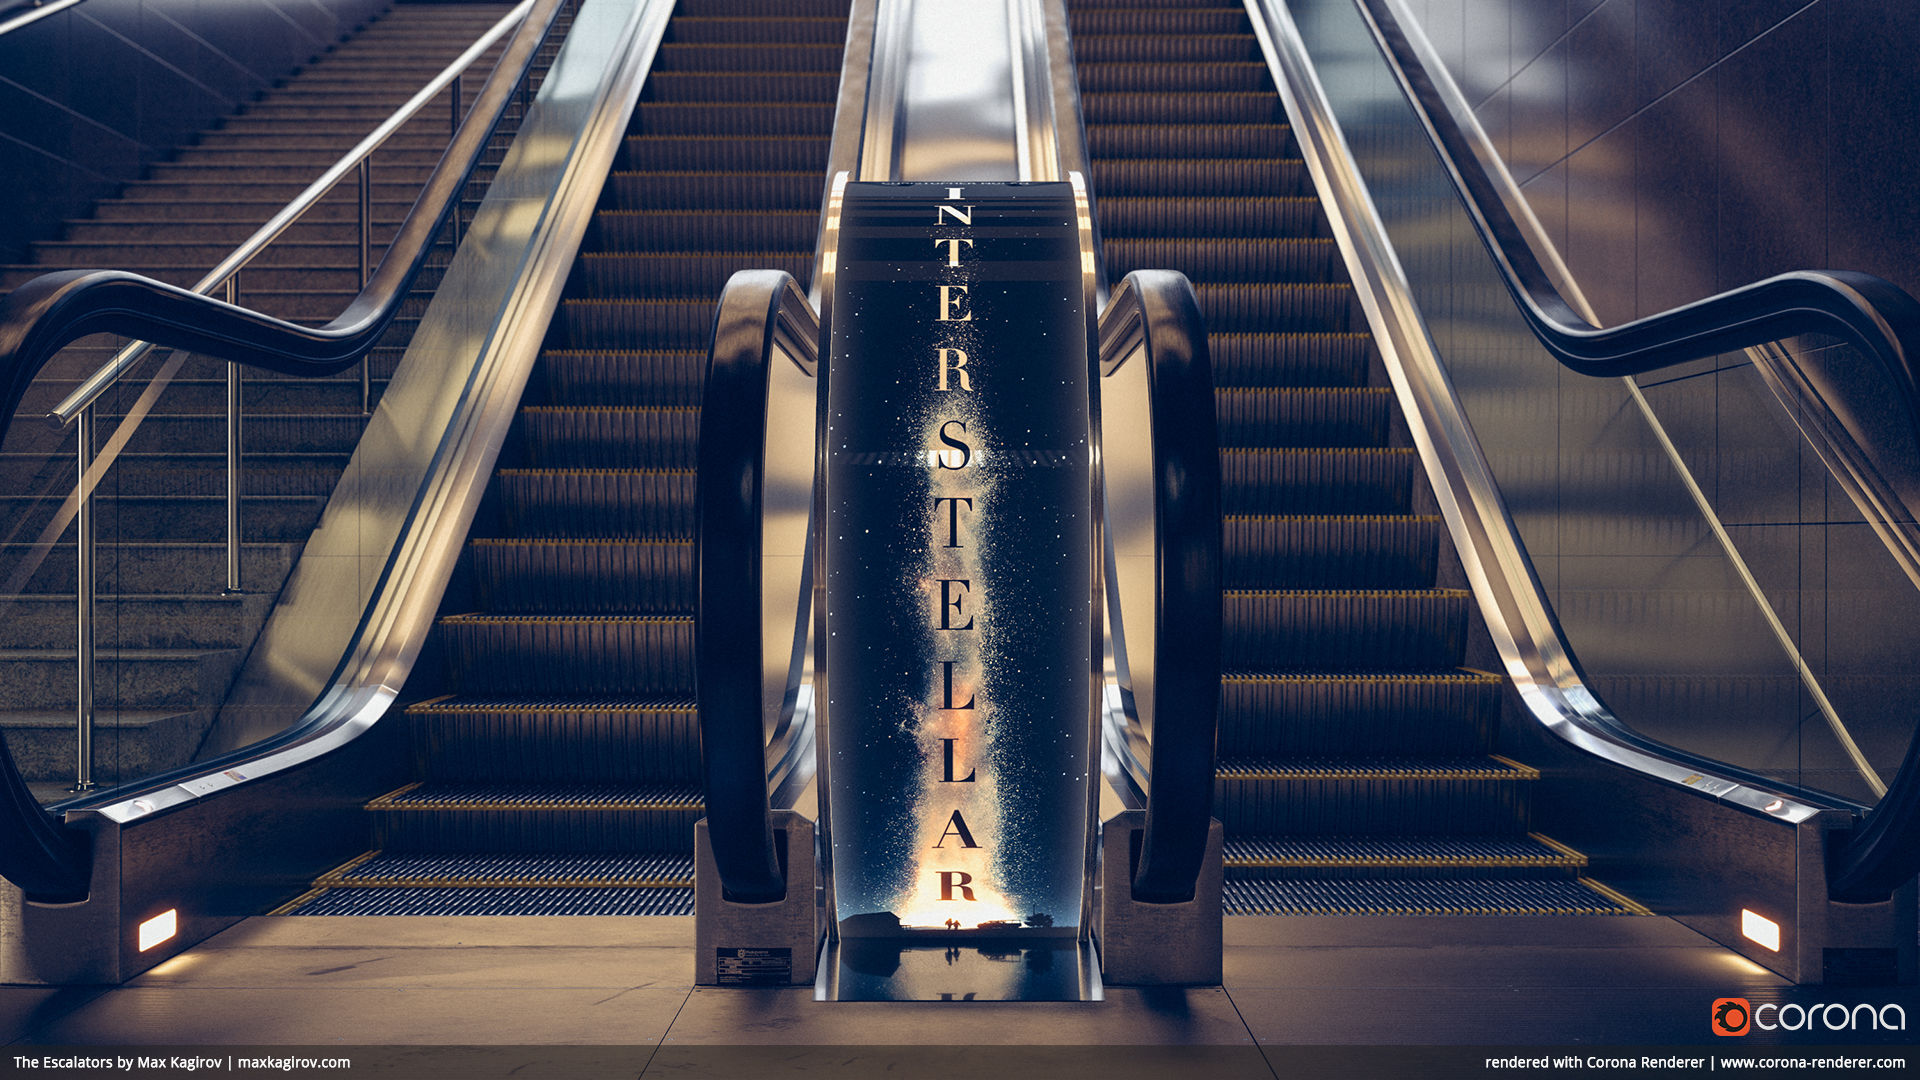 The Escalators 05 by Max Kagirov